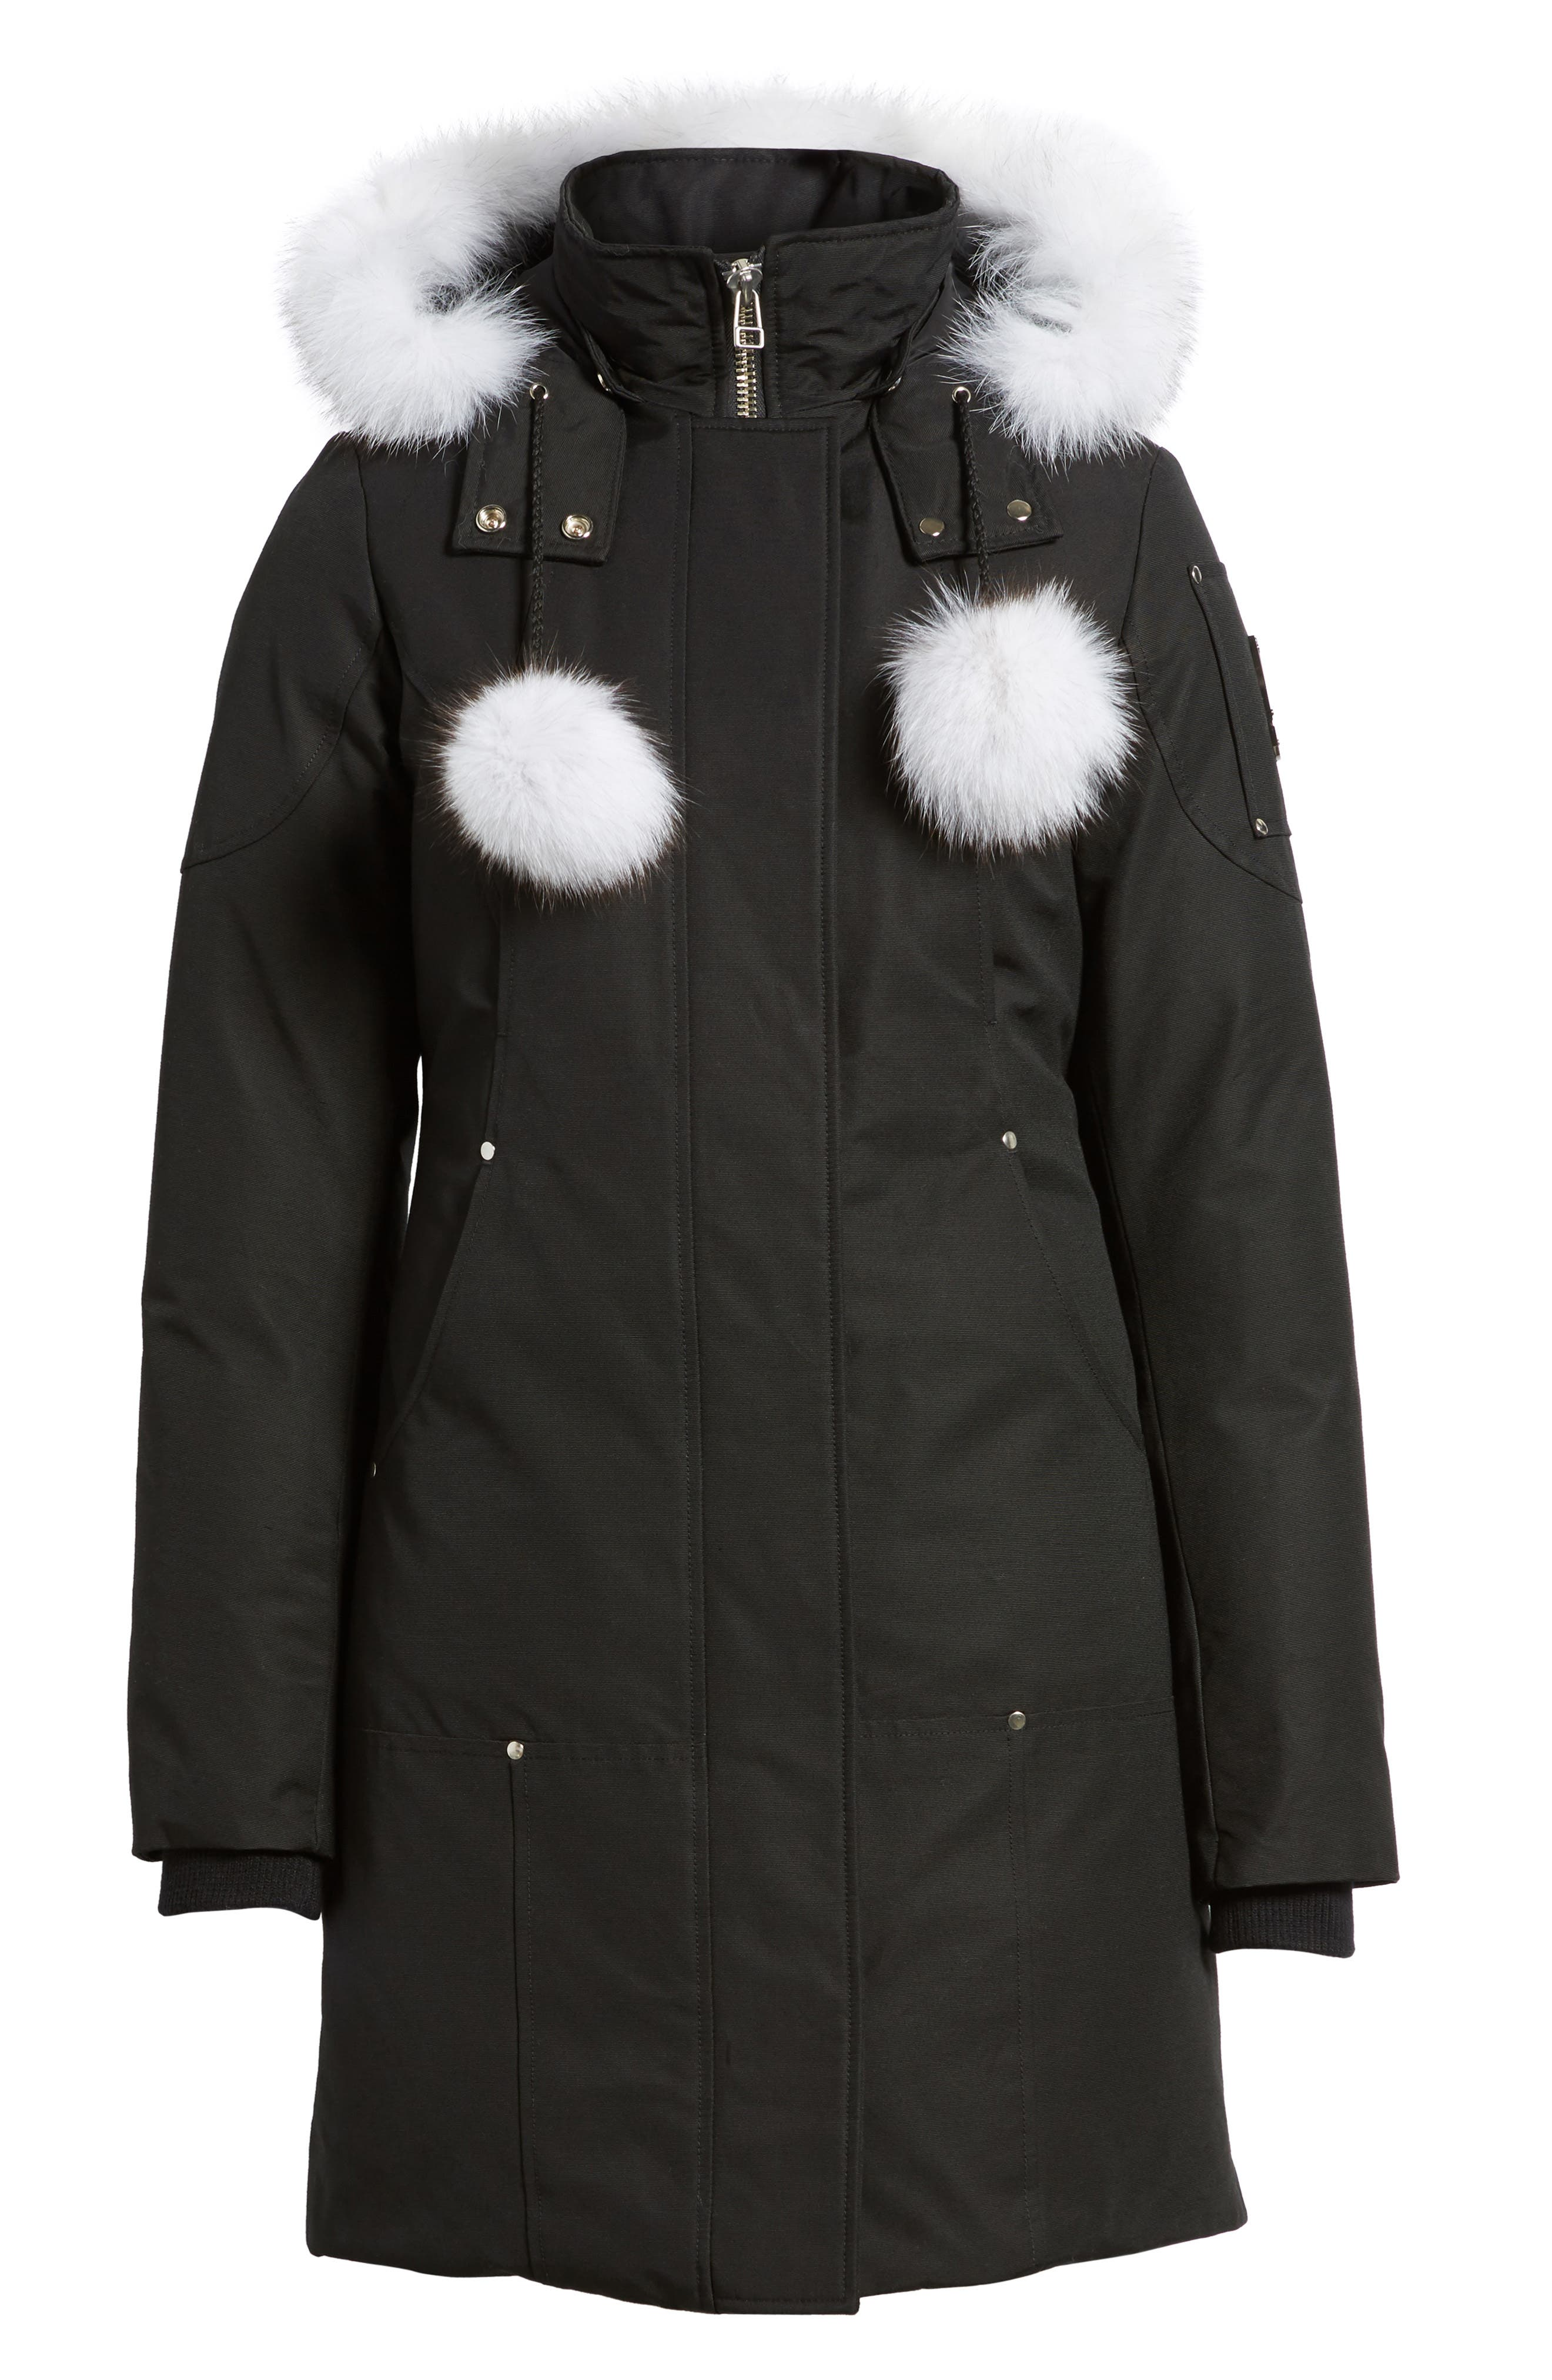 'Stirling' Down Parka with Genuine Fox Fur Trim,                             Alternate thumbnail 7, color,                             BLACK/ WHITE FUR